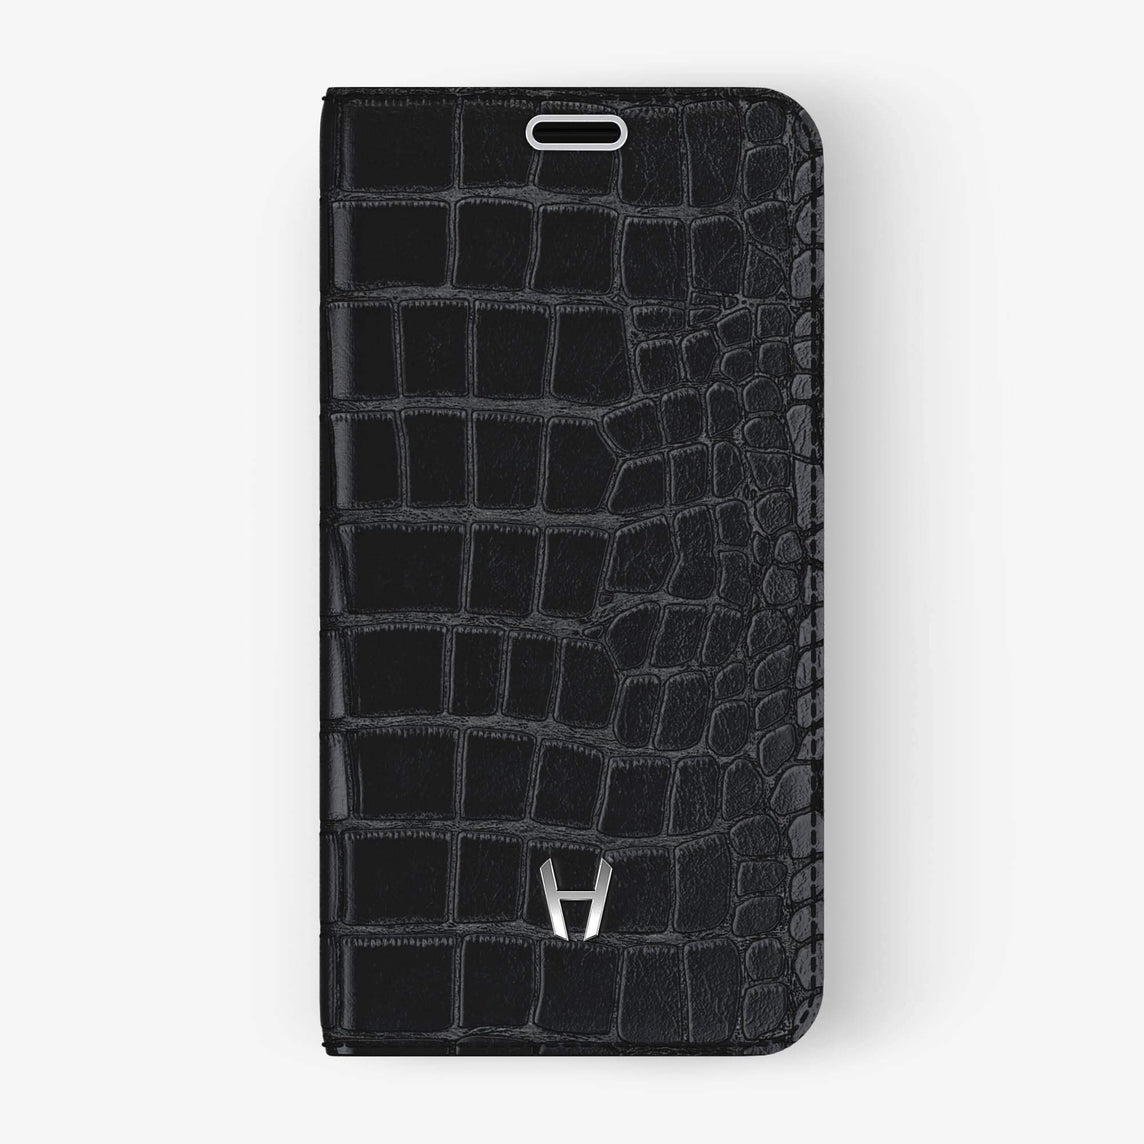 Black Alligator iPhone Folio Case for iPhone XS Max finishing stainless steel - Hadoro Luxury Cases